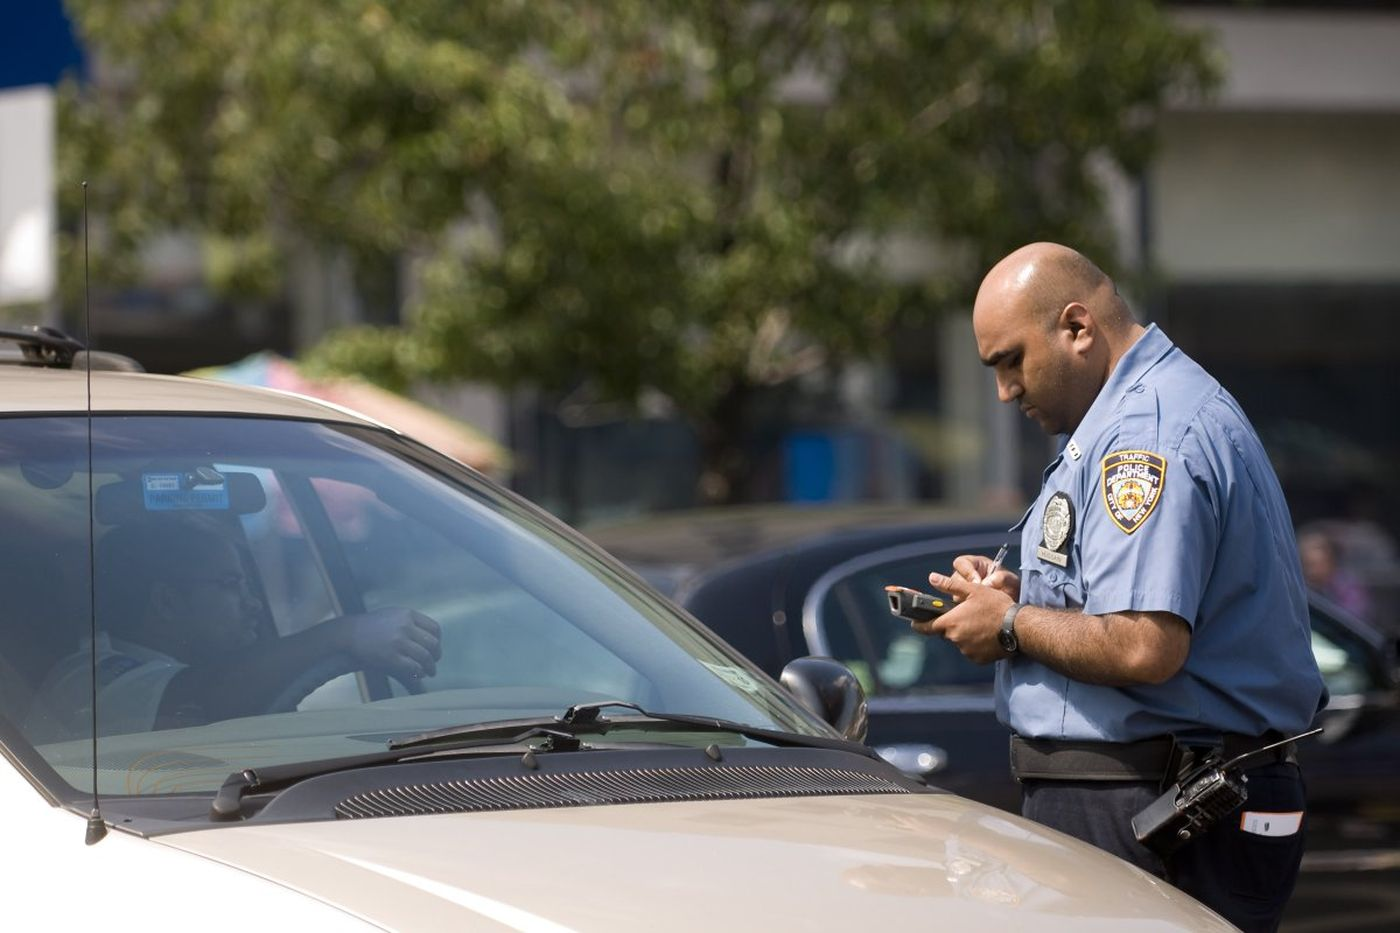 You Should Try to avoid the NYC parking ticket hotspot